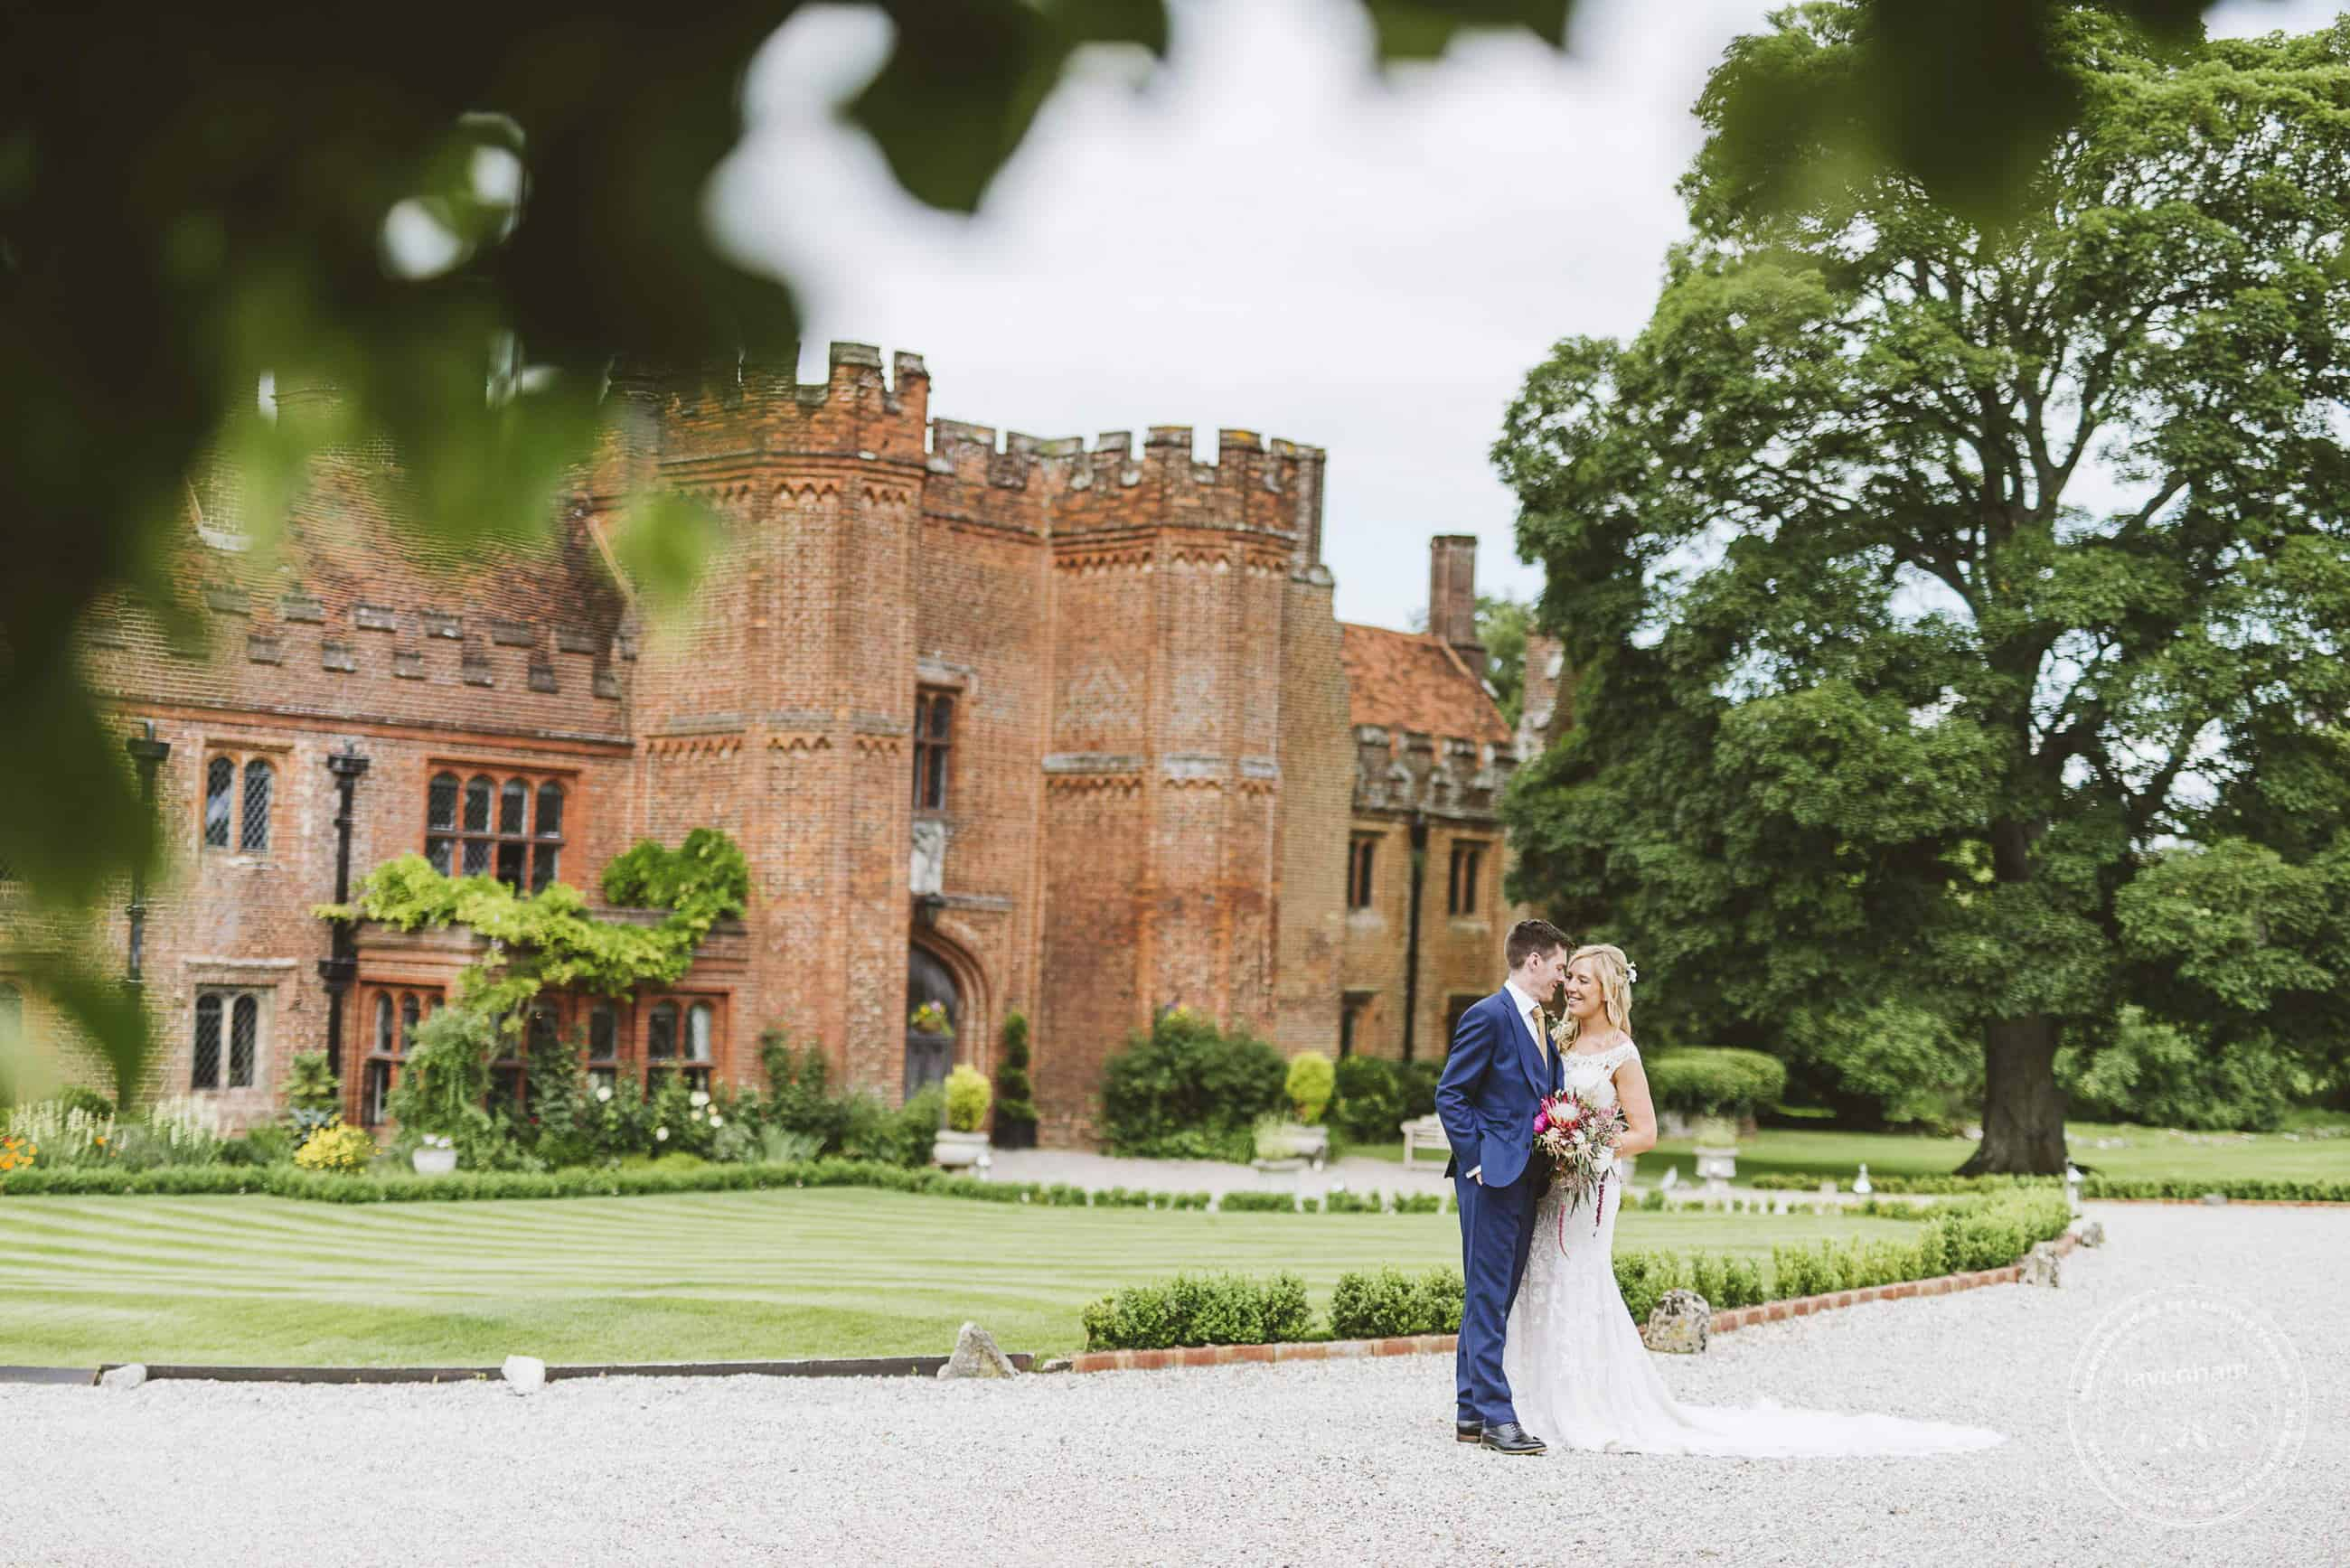 Leez priory wedding photo, framed through leafy trees